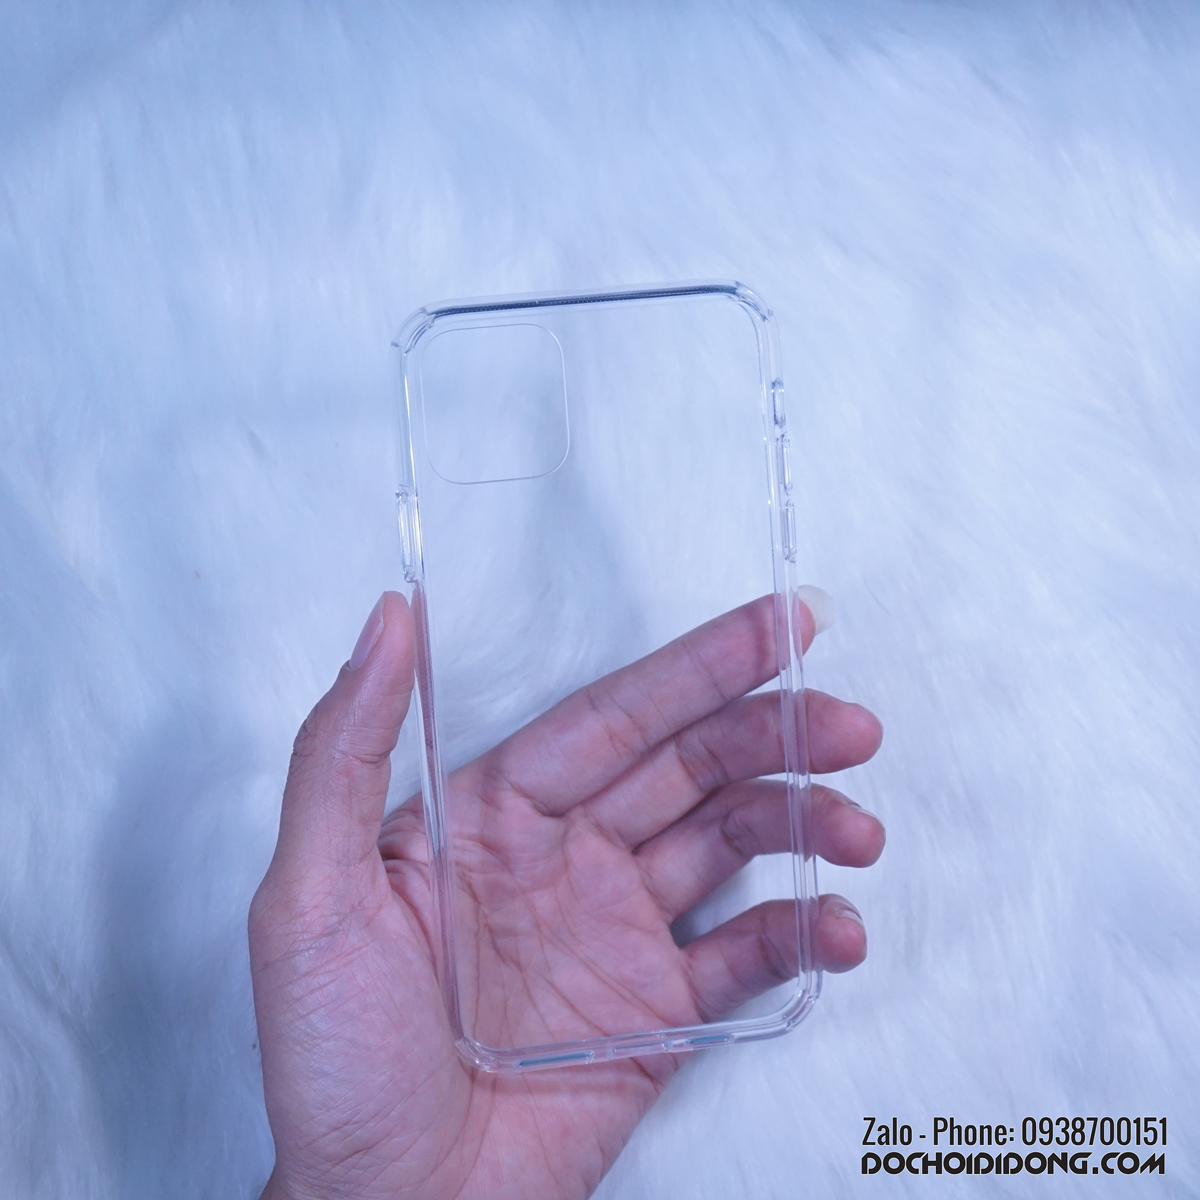 op-lung-iphone-11-pro-max-likgus-lung-cung-trong-vien-deo-trong-chong-soc